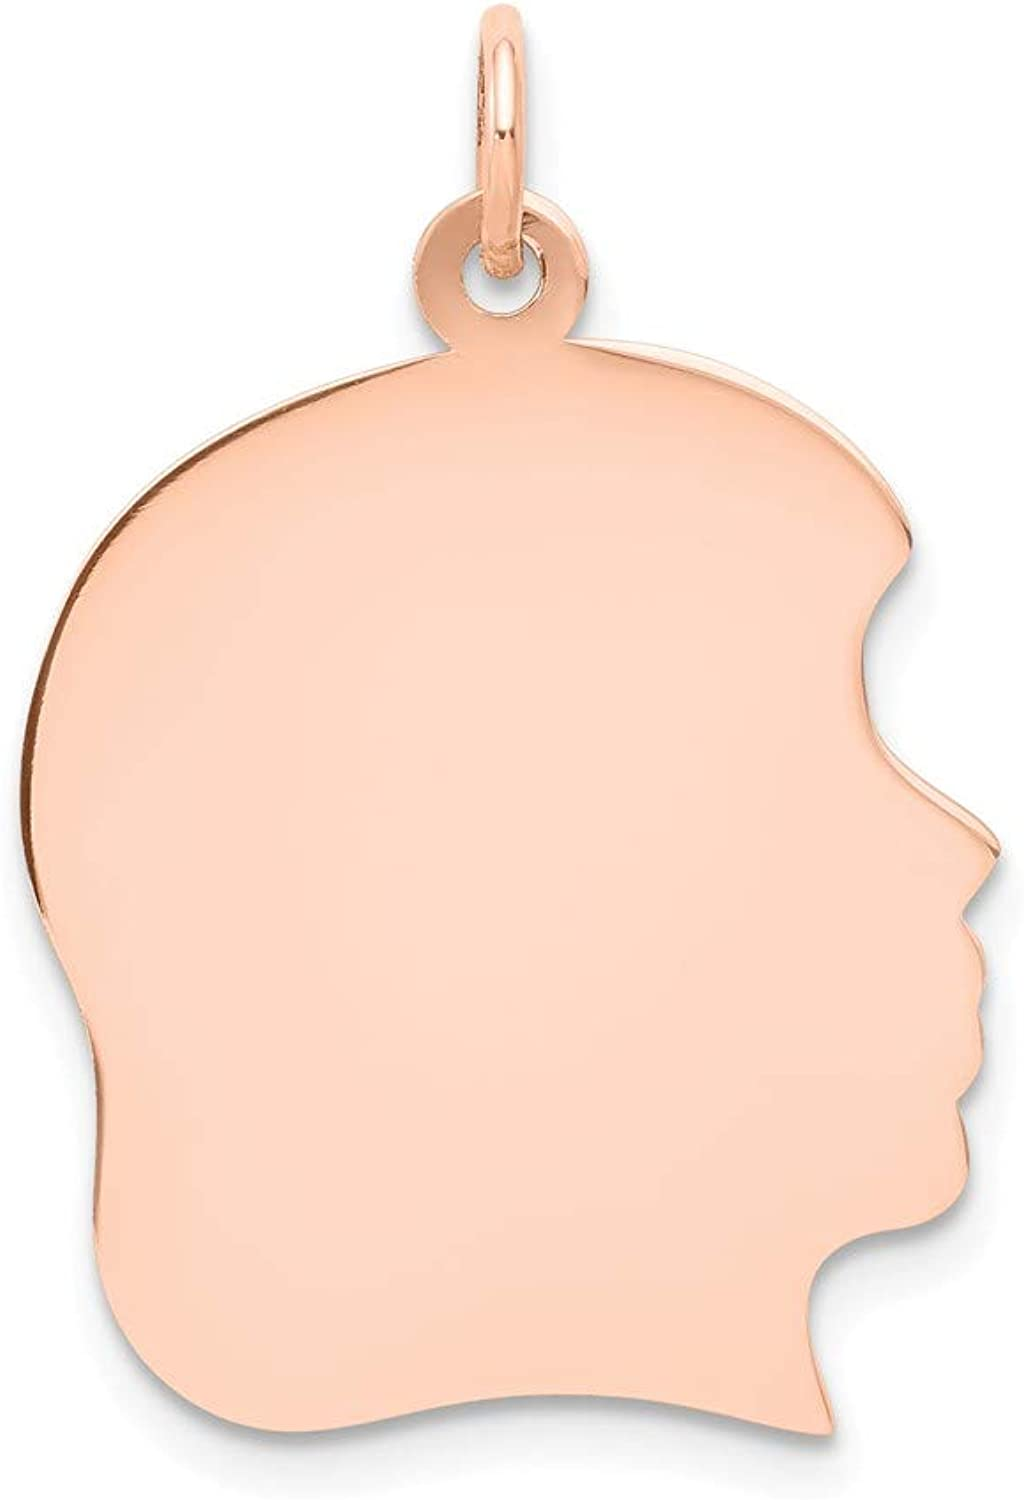 Beautiful pink gold 14K 14k pink gold Plain Large .011 Gauge Facing Right Engraveable Girl Head Cha